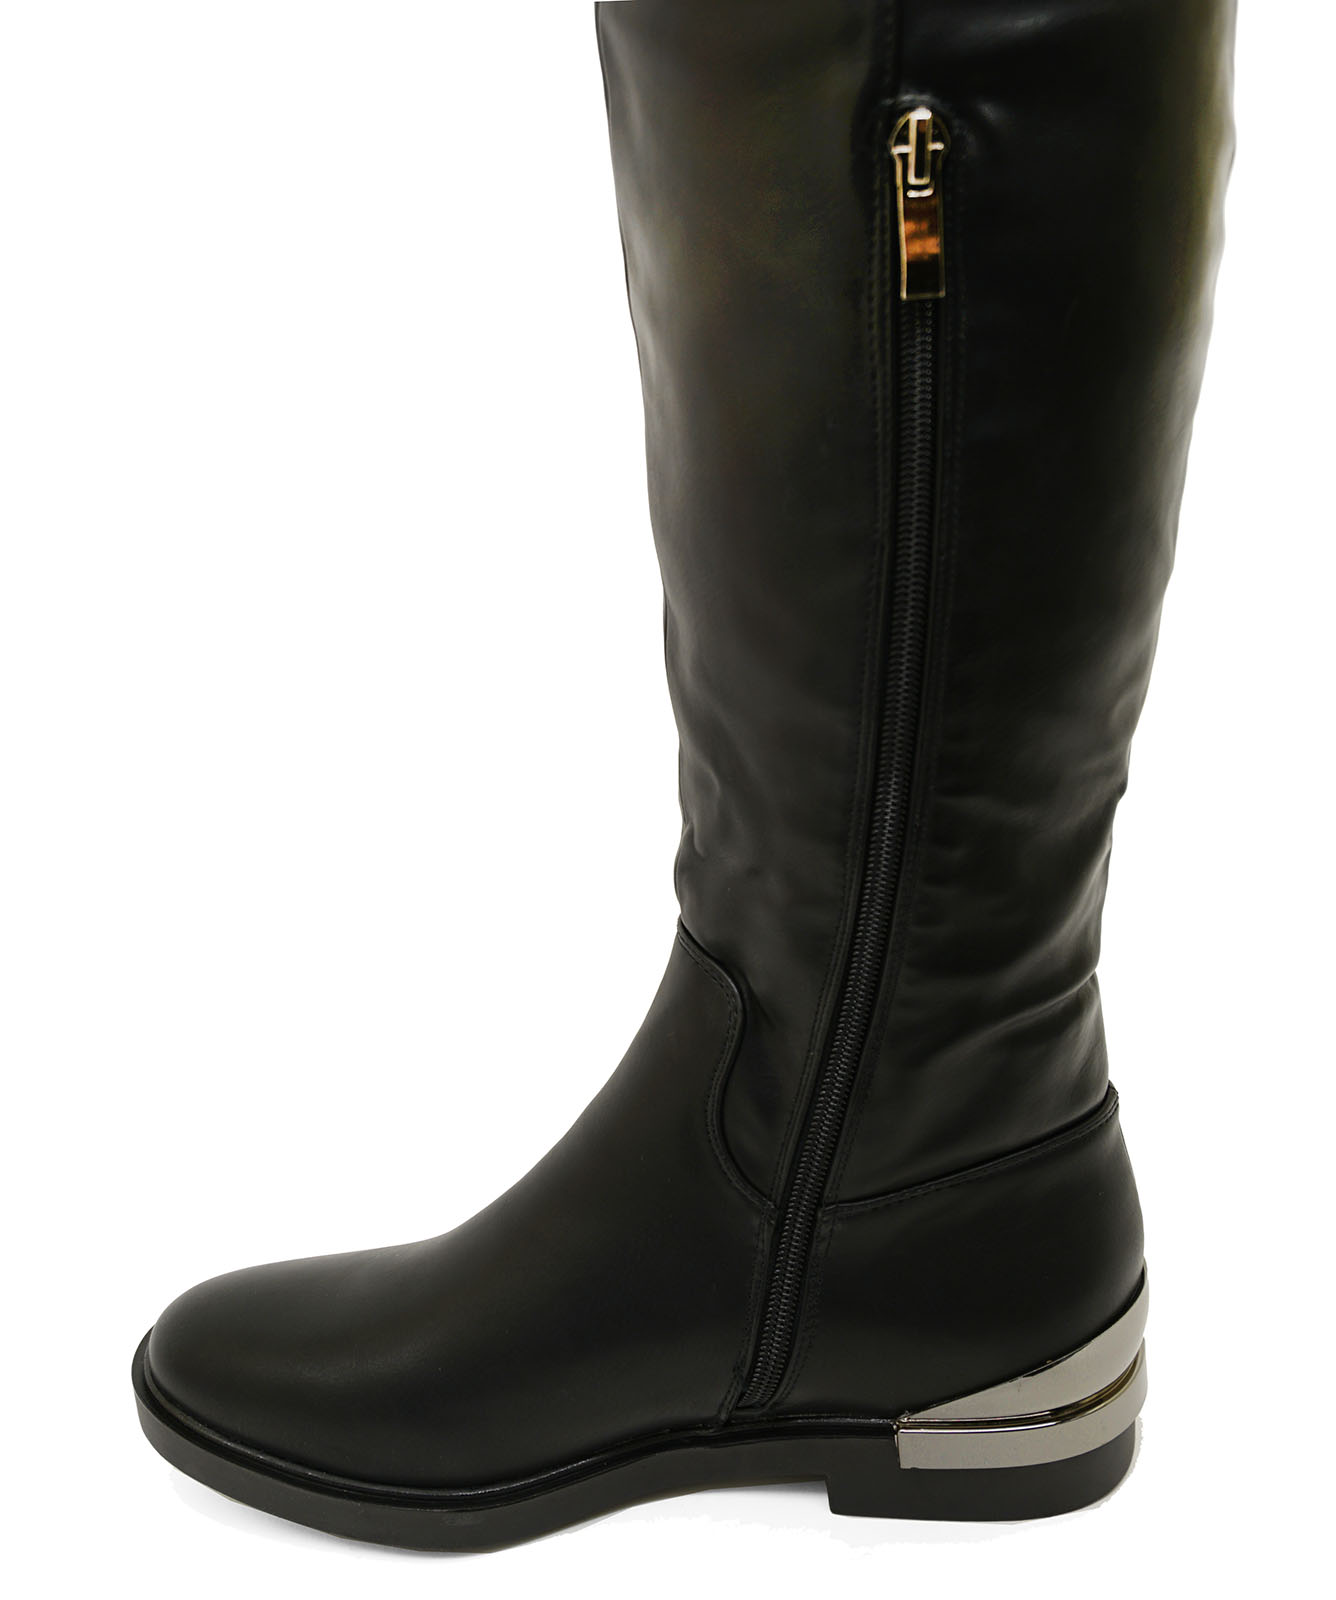 thumbnail 12 - LADIES-BLACK-FLAT-OVER-THE-KNEE-HIGH-TALL-ZIP-UP-RIDING-WORK-BOOTS-SHOES-UK-3-8